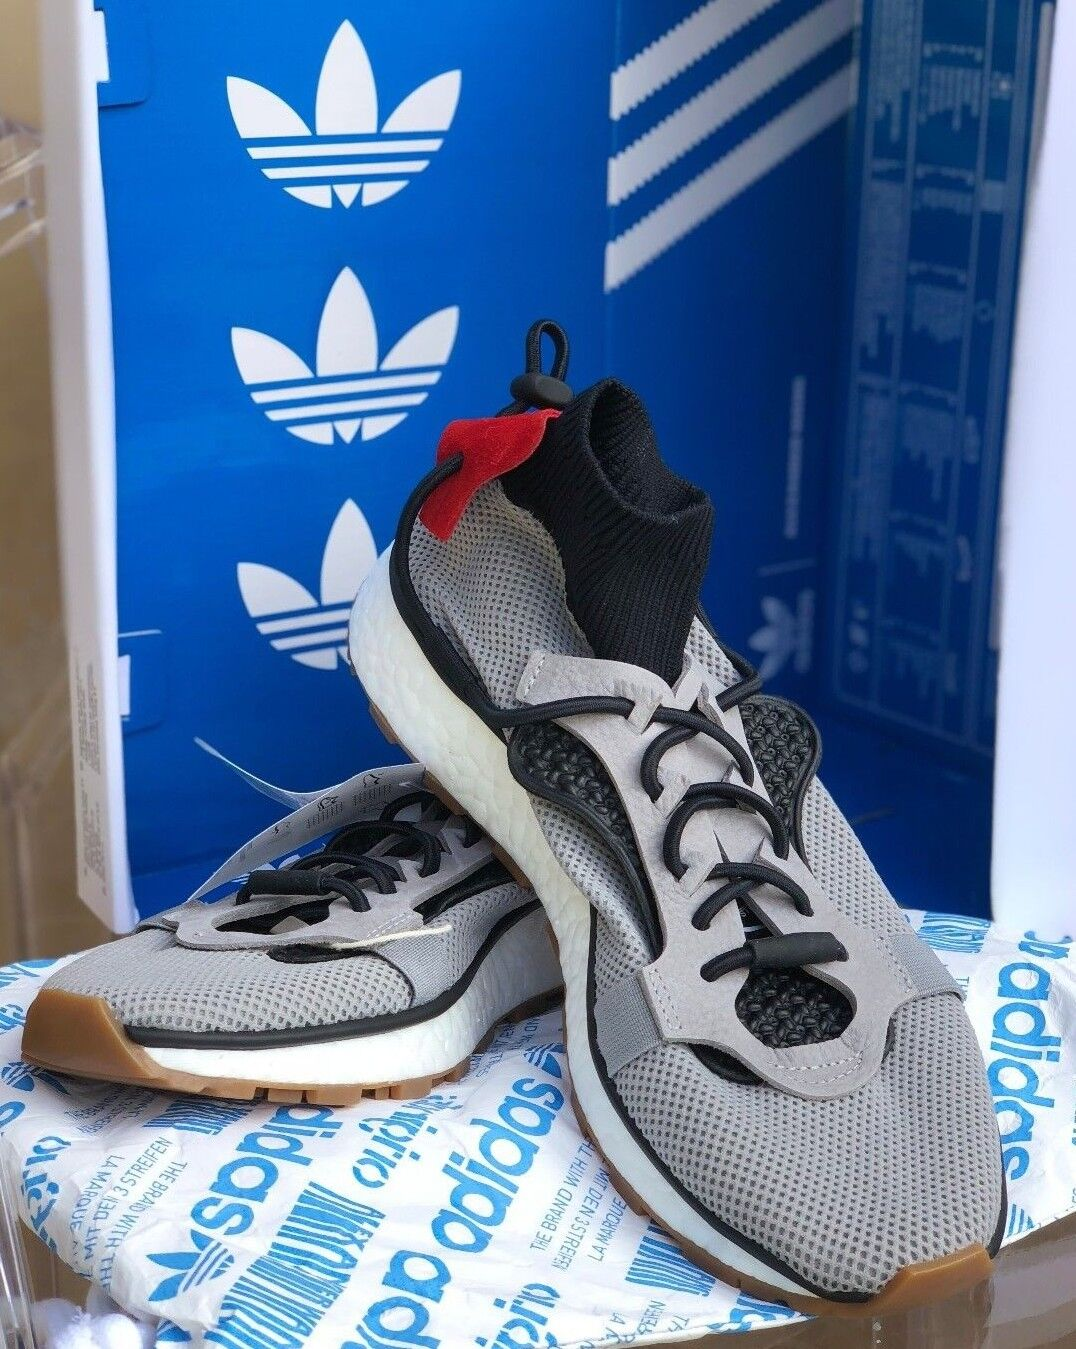 Adidas Originals by Alexander Wang x AW Run Boost CM7826 SZ M 6.5 W 7.5